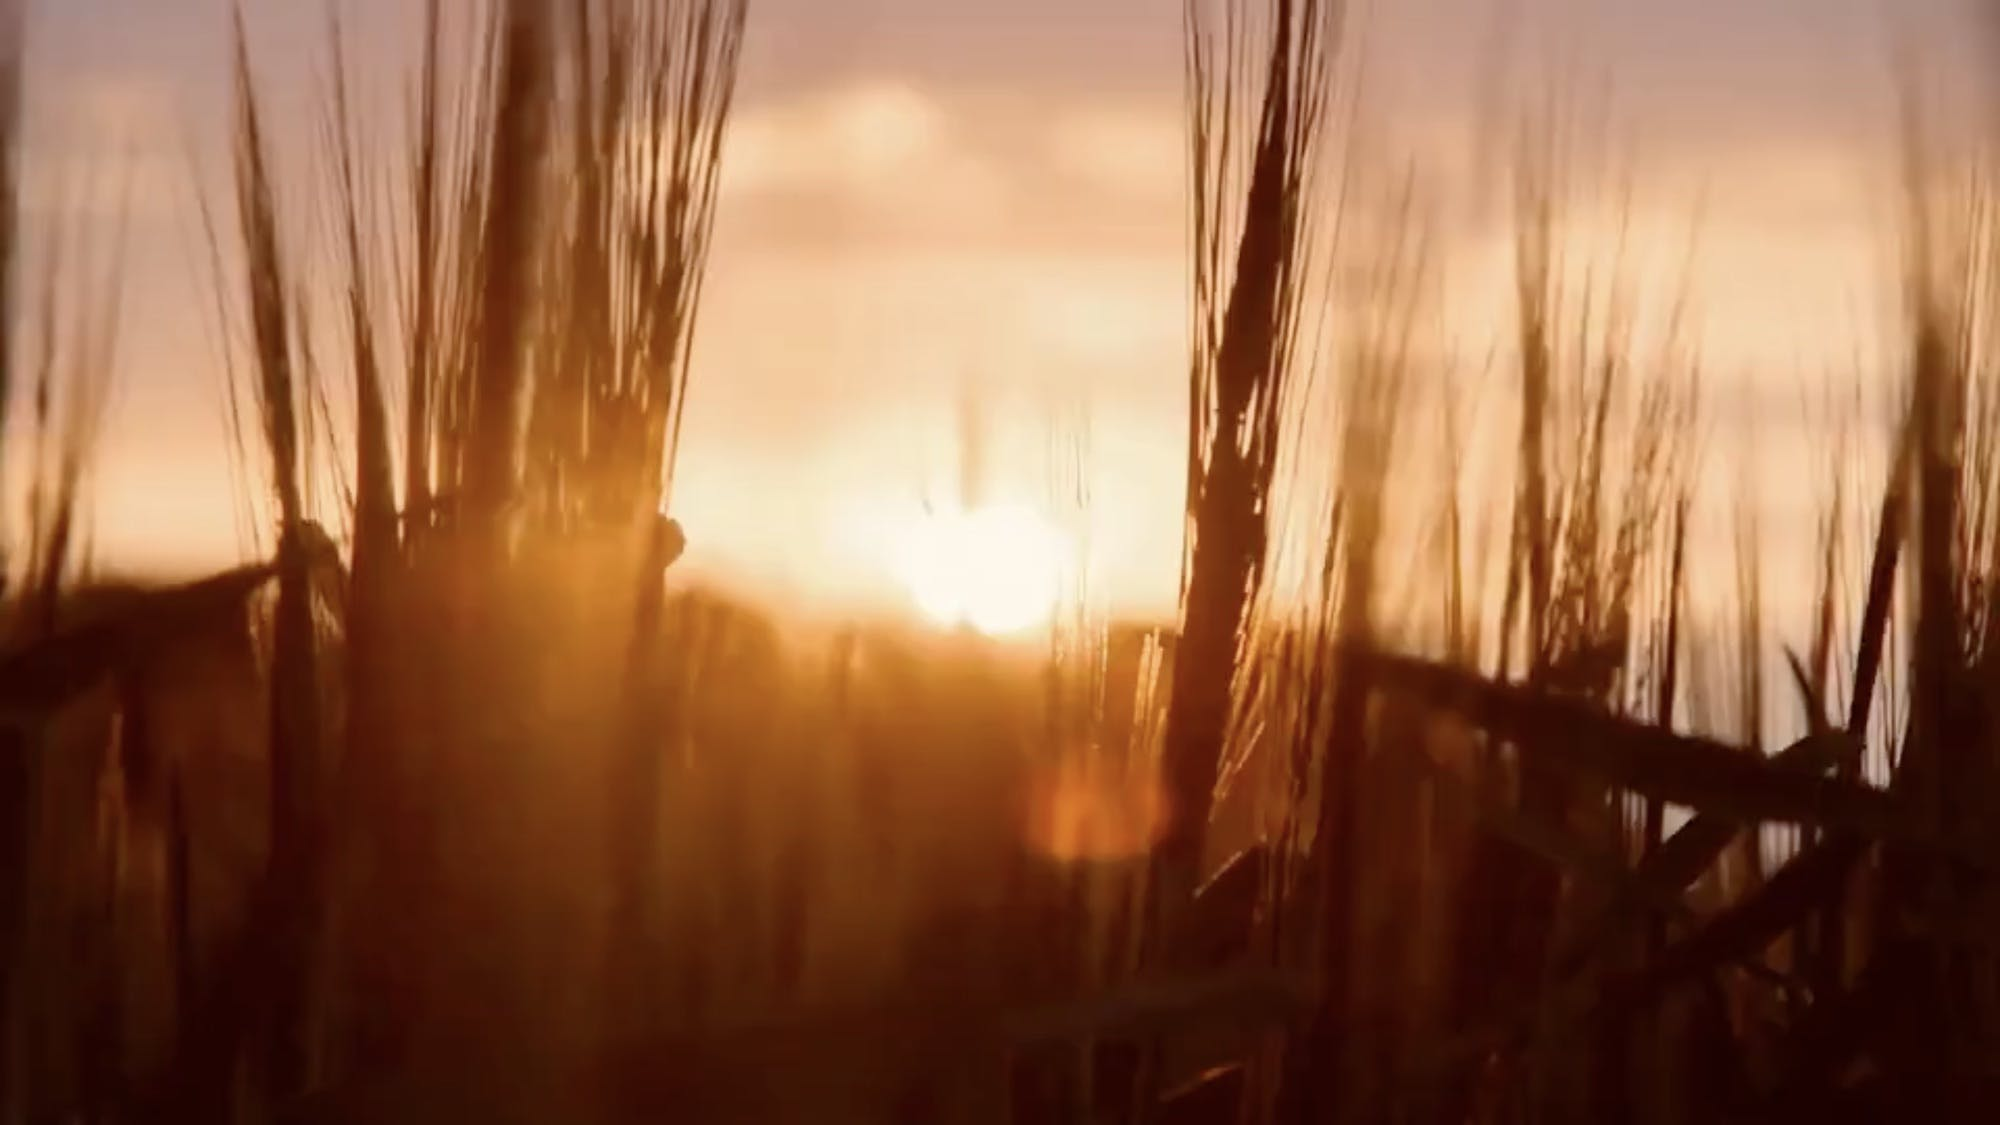 A sunrise overlooking a field of wheat